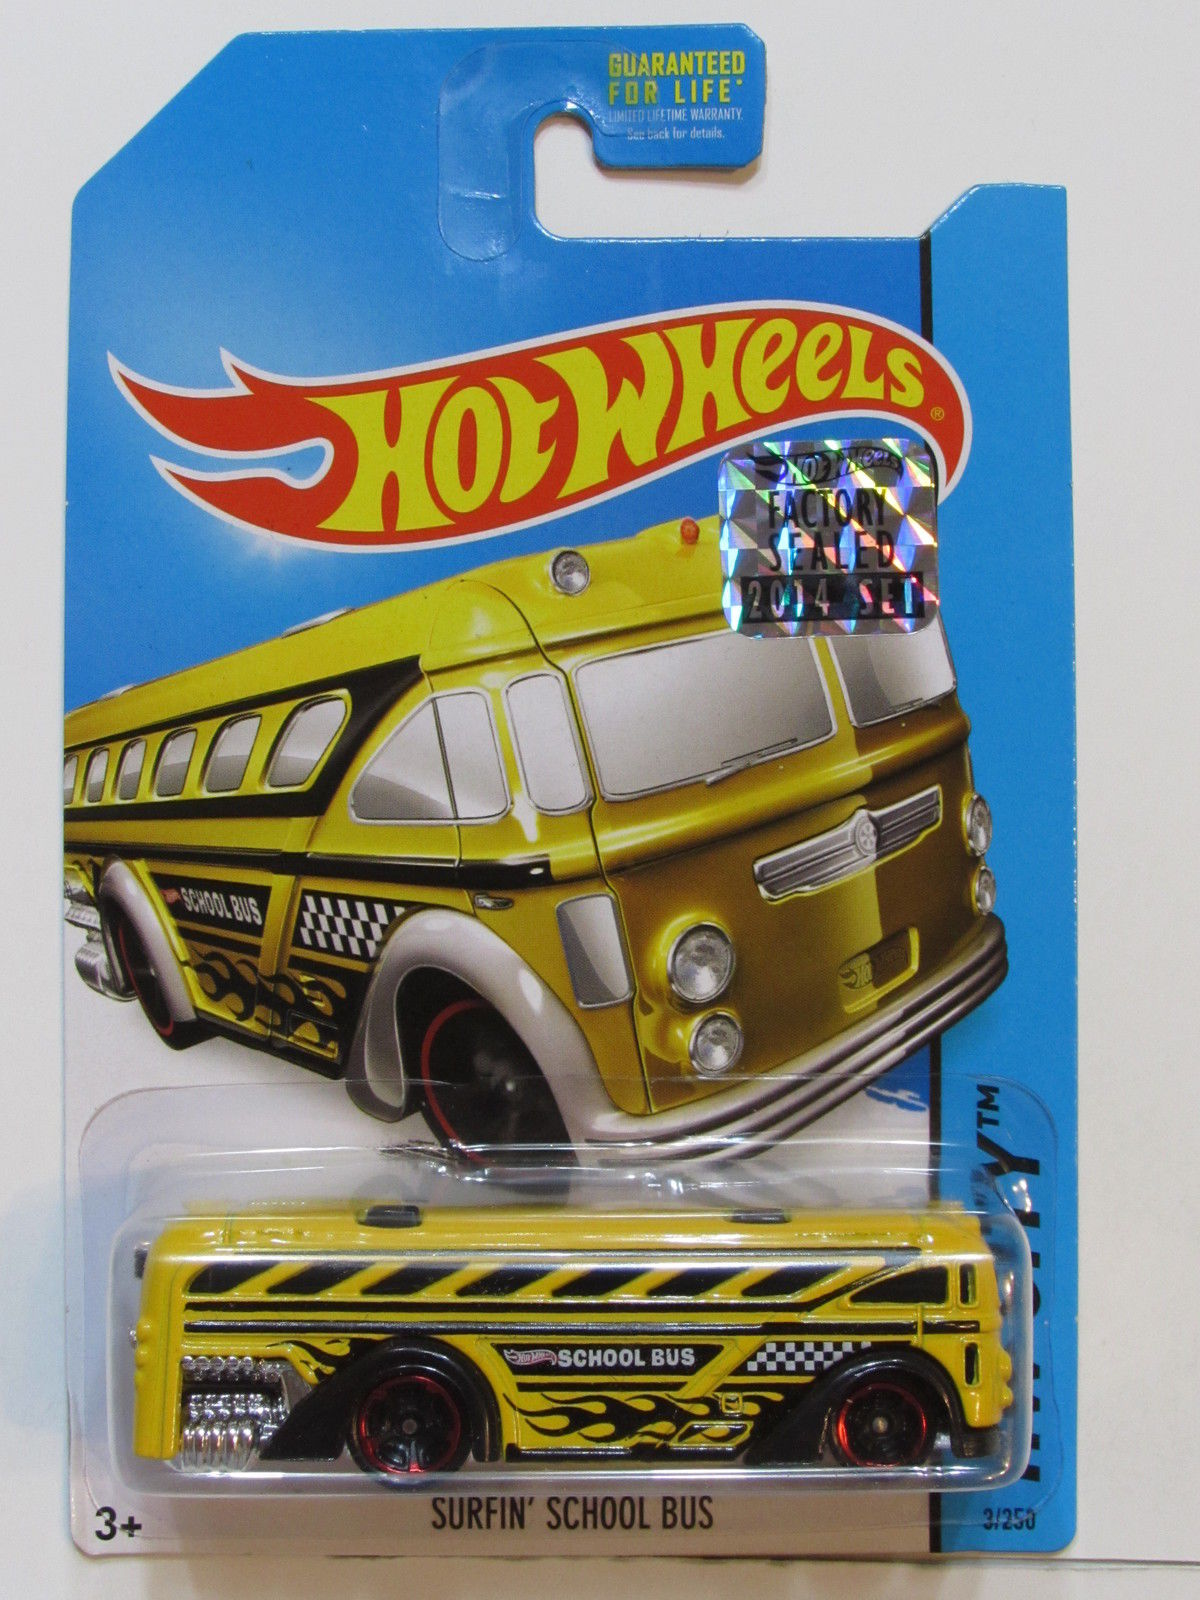 HOT WHEELS 2014 HW CITY SURFIN SCHOOL BUS FACTORY SEALED YELLOW